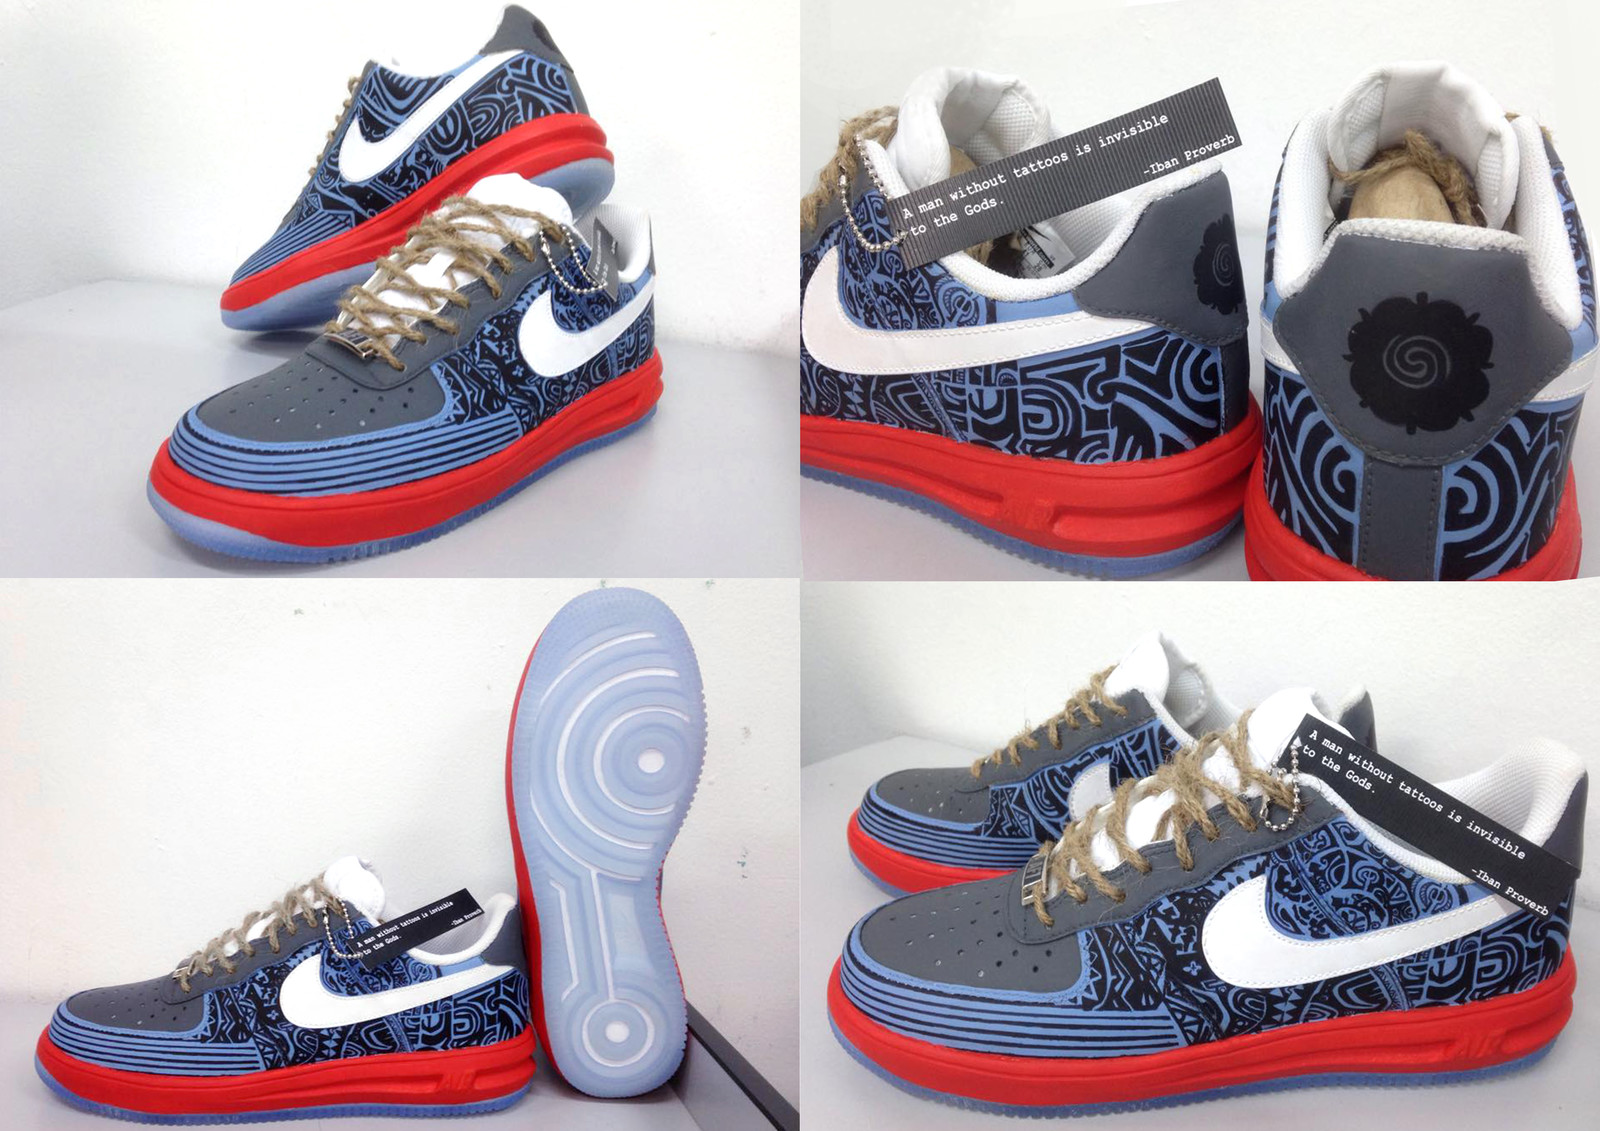 http://masses.com.my/2014/12/af1theory-contest-entries/